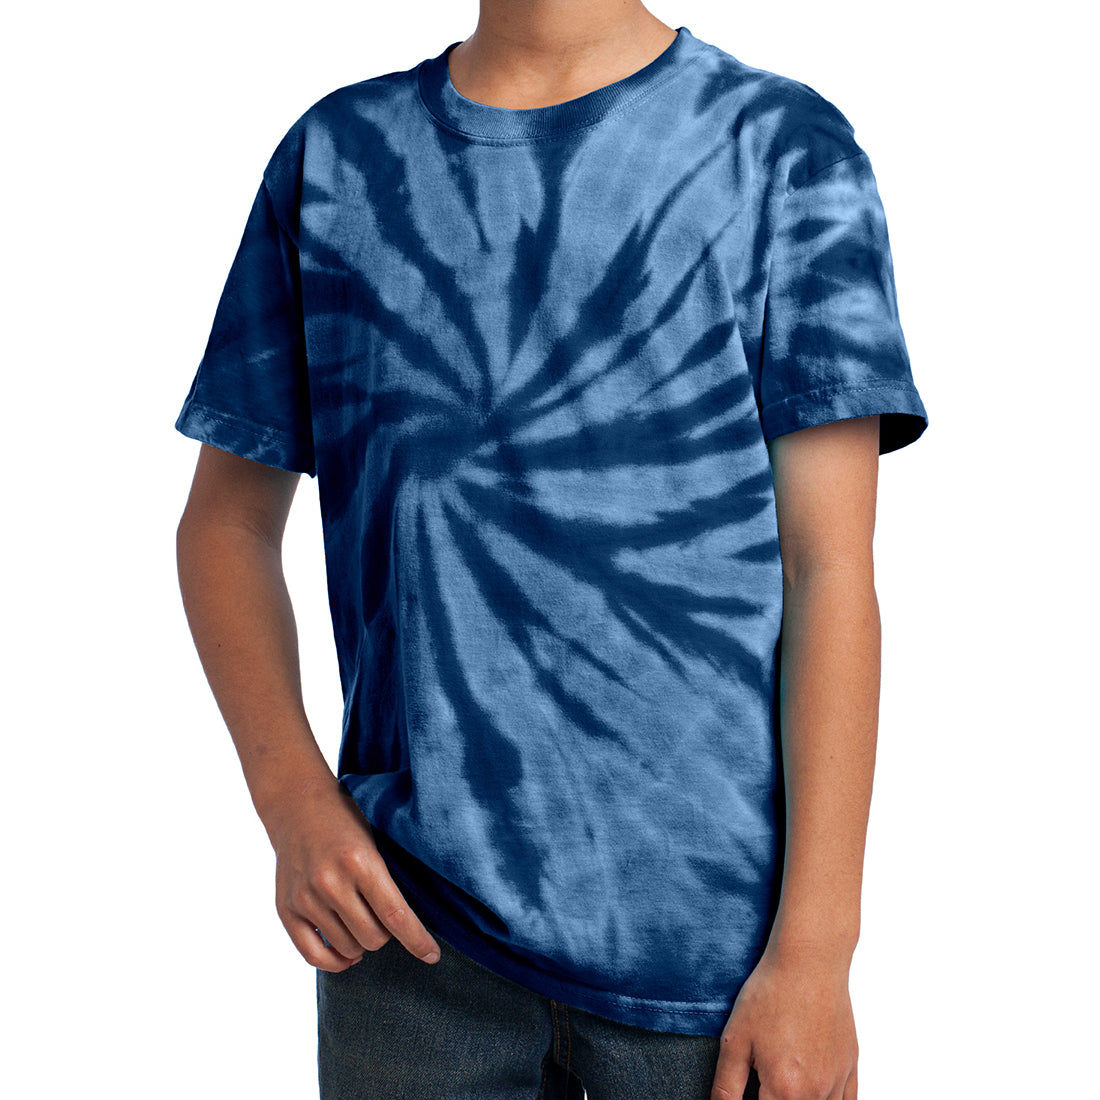 Youth Tie-Dye Tee - Navy